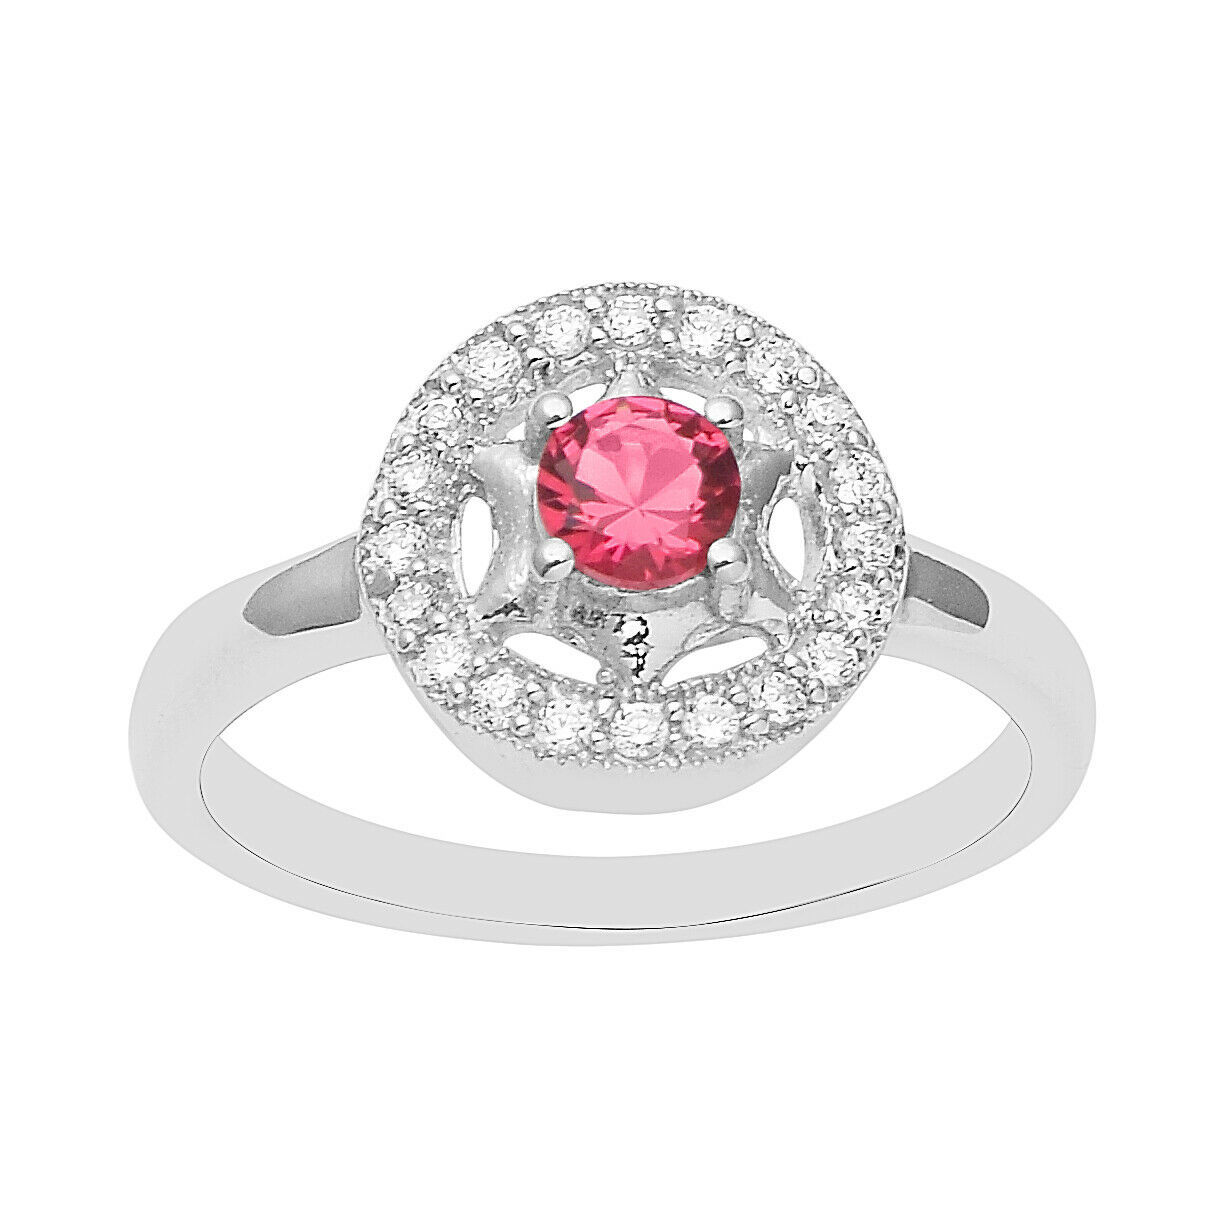 Primary image for Cubic Zirconia Gemstone Women Wedding Ring Halo Style CZ 925 Sterling Silver